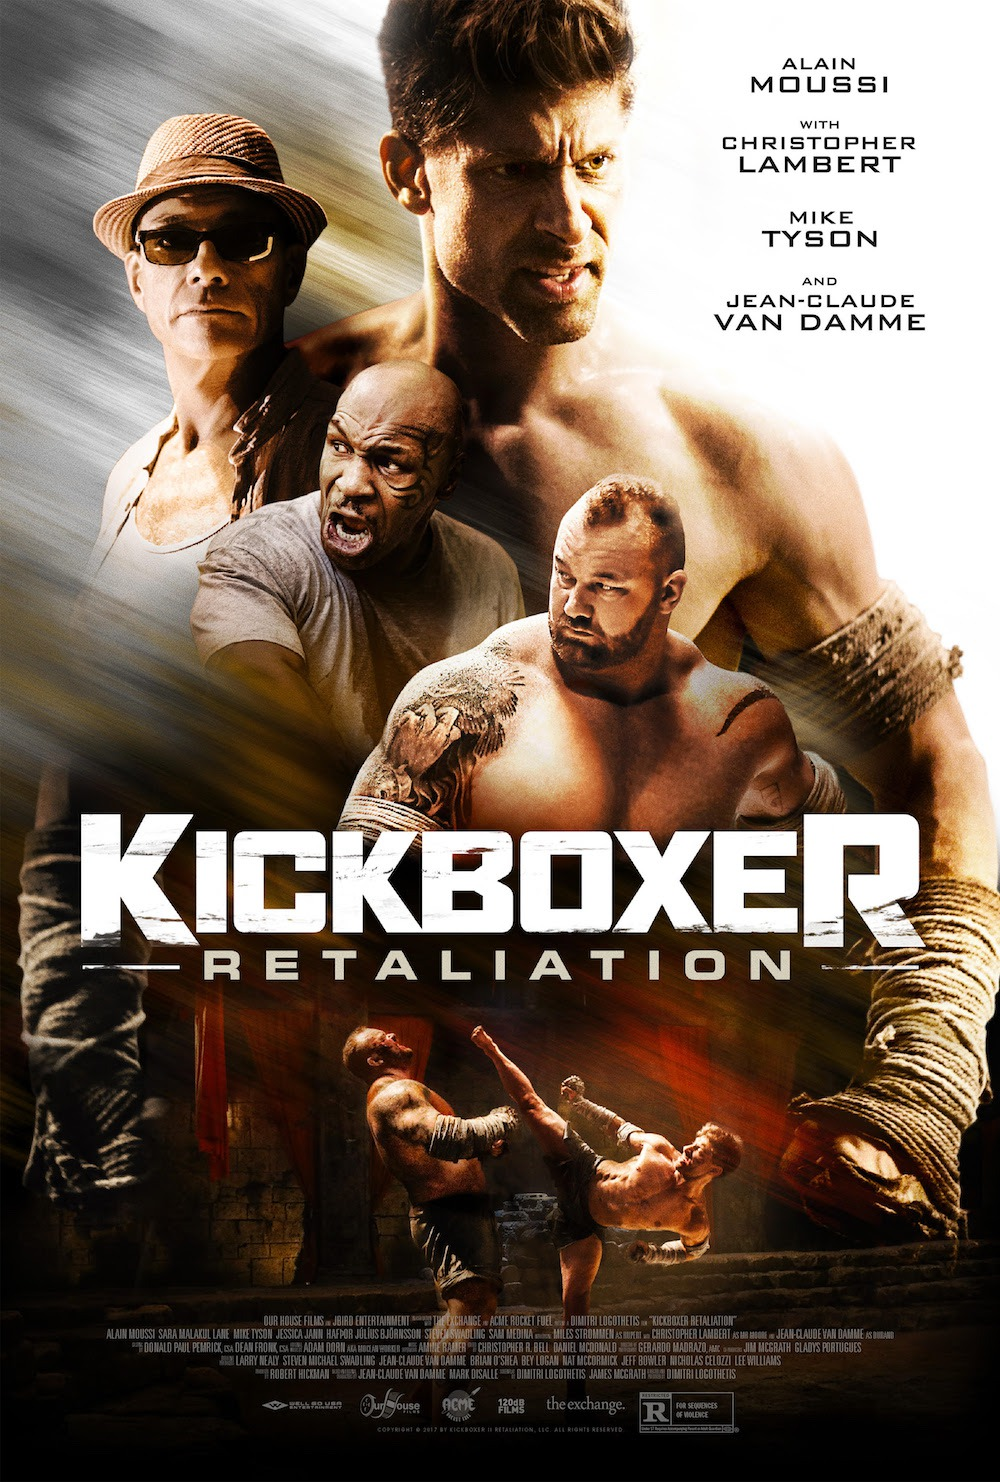 19 Kick boxer top 25 movie posters of 2018